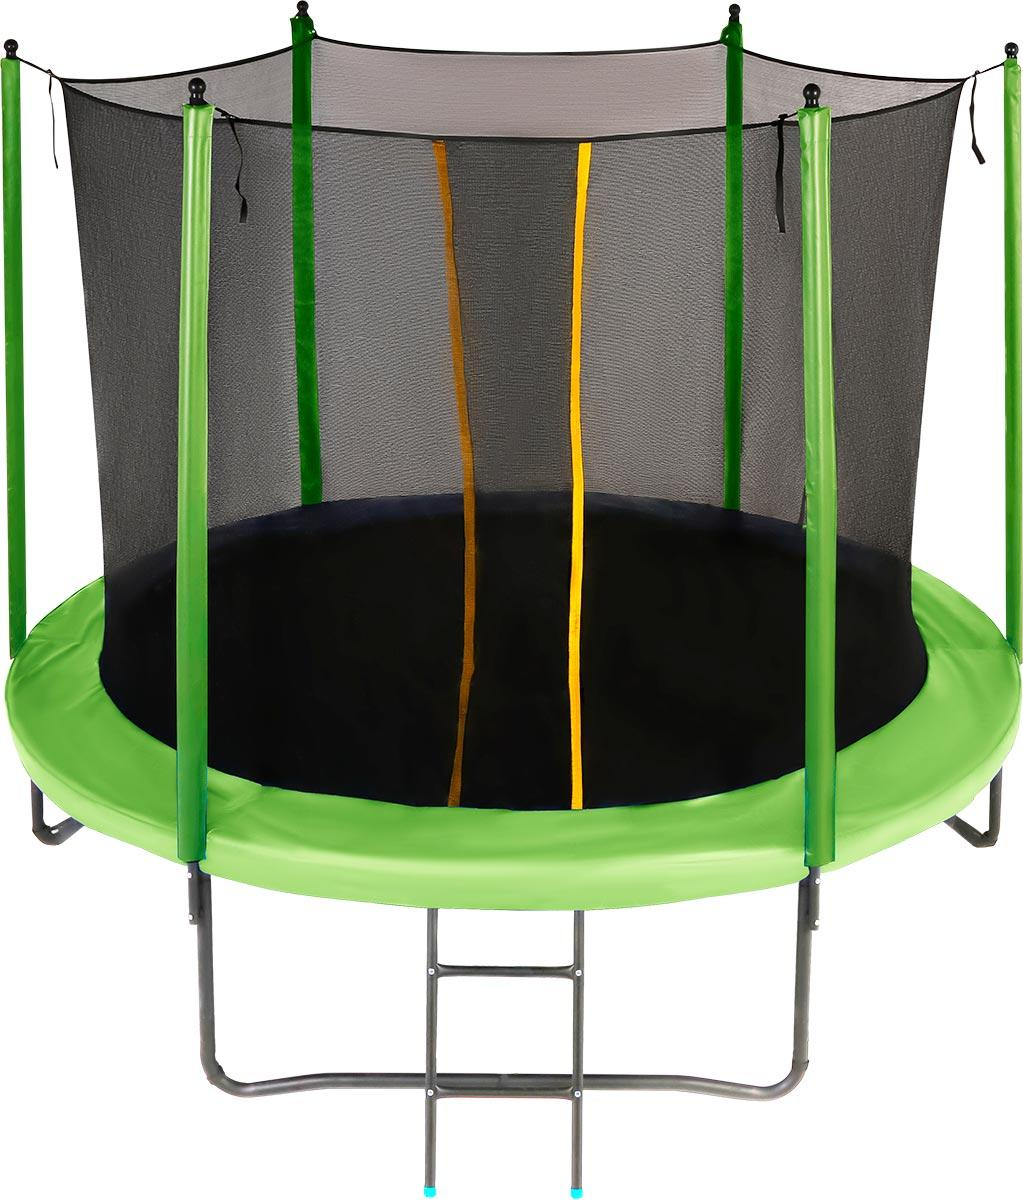 Батут JUMPY Comfort 10 FT (Green), фото №1